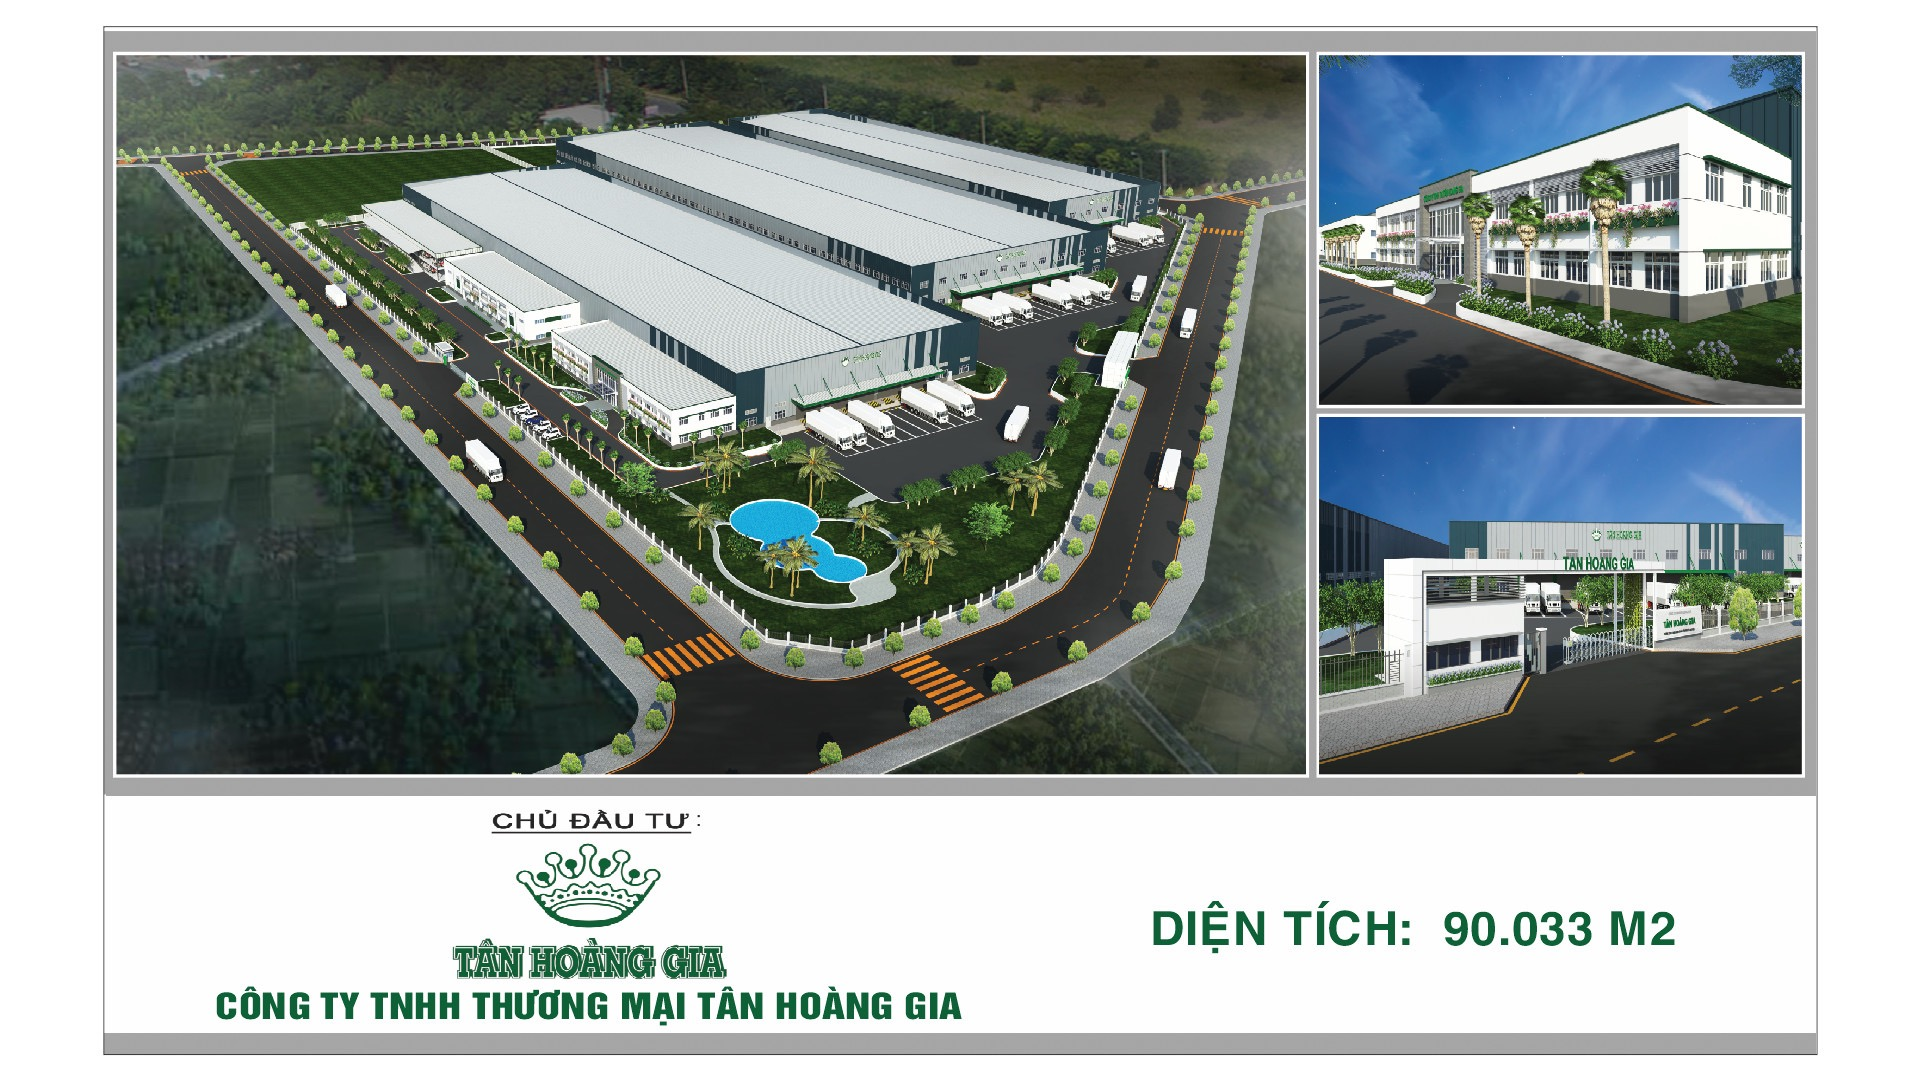 GROUNDBREAKING CEREMONY FOR TAN HOANG GIA NEW FACTORY